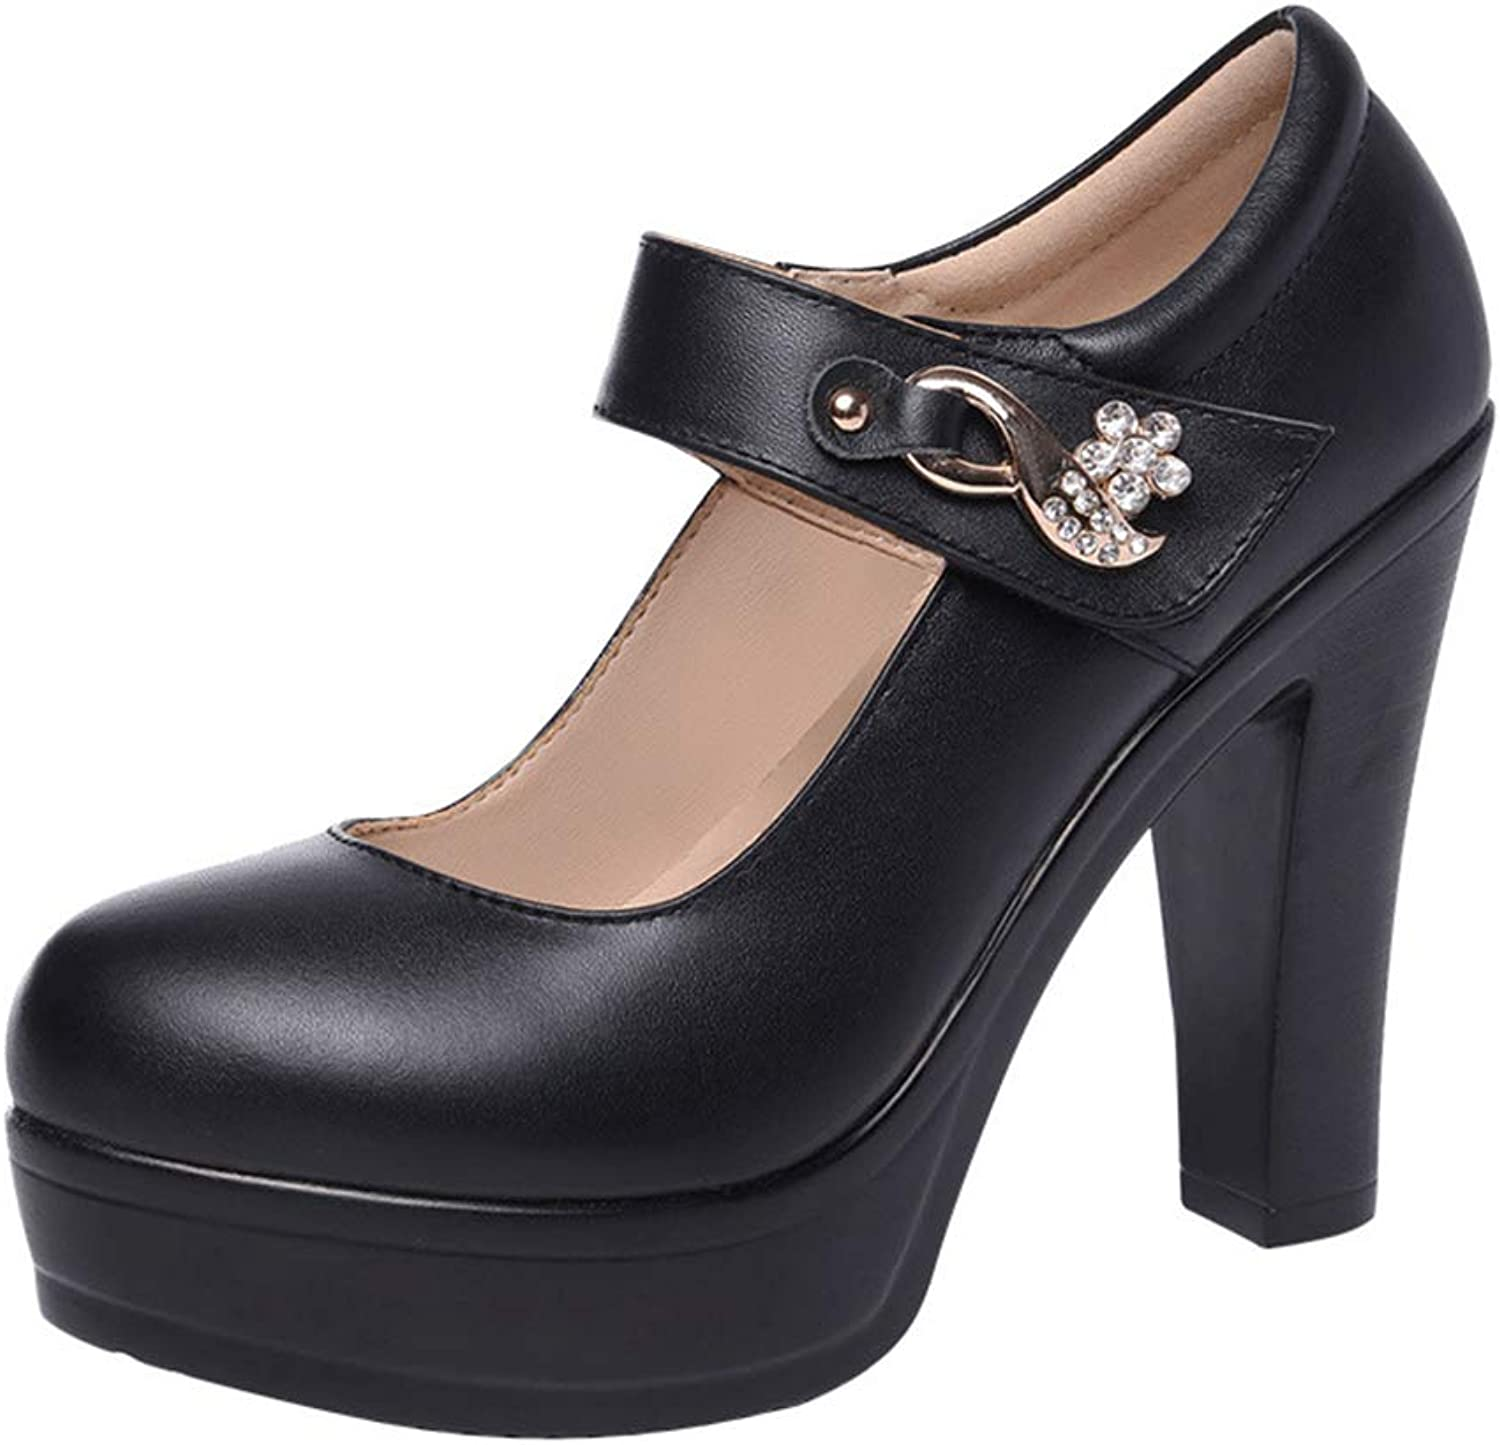 Women's Fashion shoes Rhinestone Platform shoes Work shoes Cheongsam Dress shoes Buckle shoes Party & Evening Black (color   Black, Size   34)